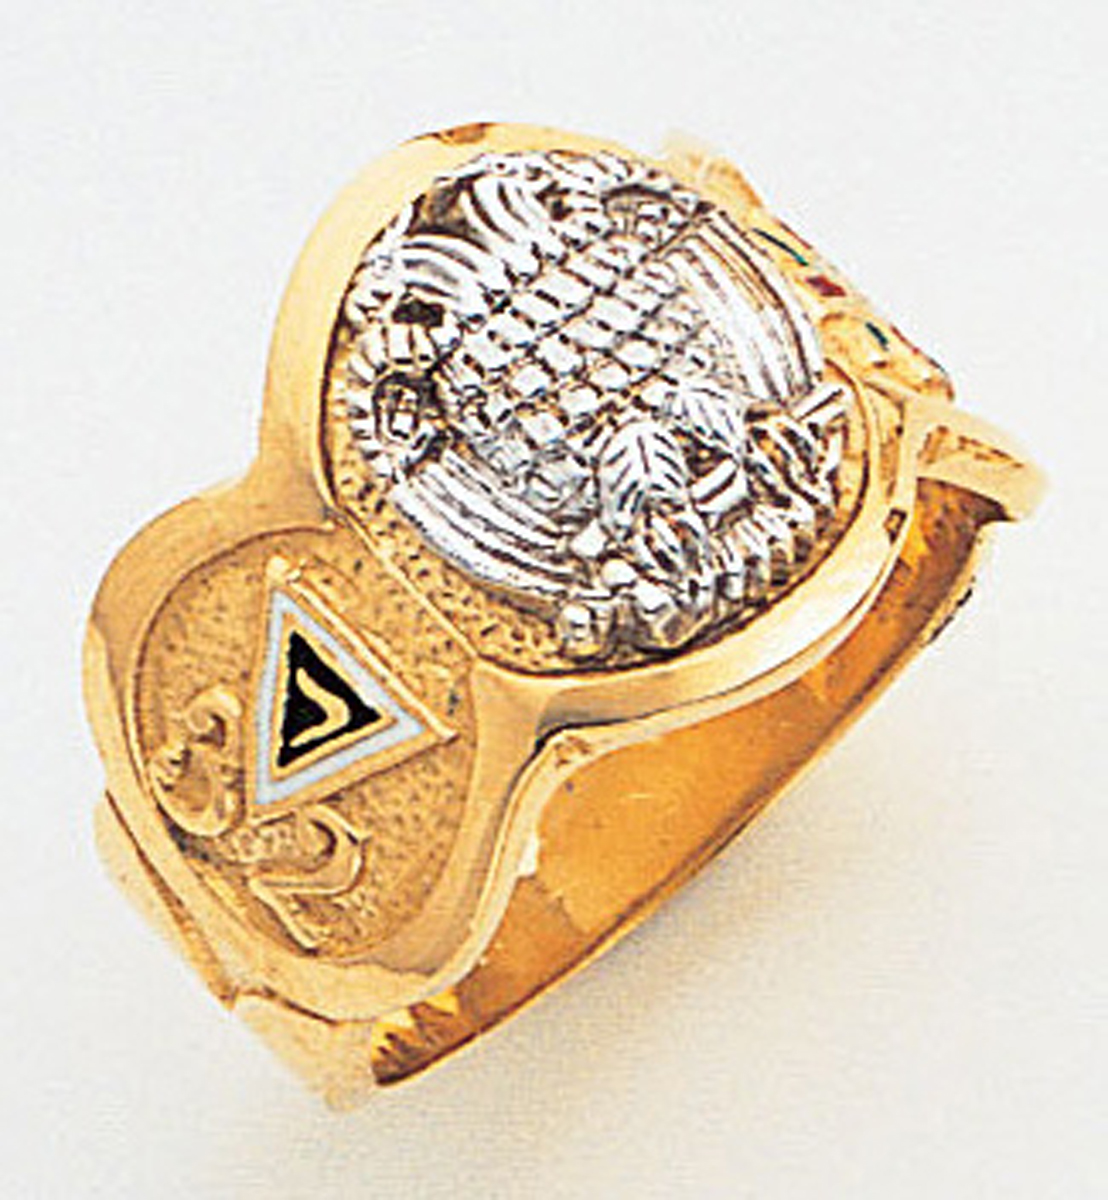 Masonic 32 Degree Scottish Rite Ring Macoy Publishing Masonic Supply 3425